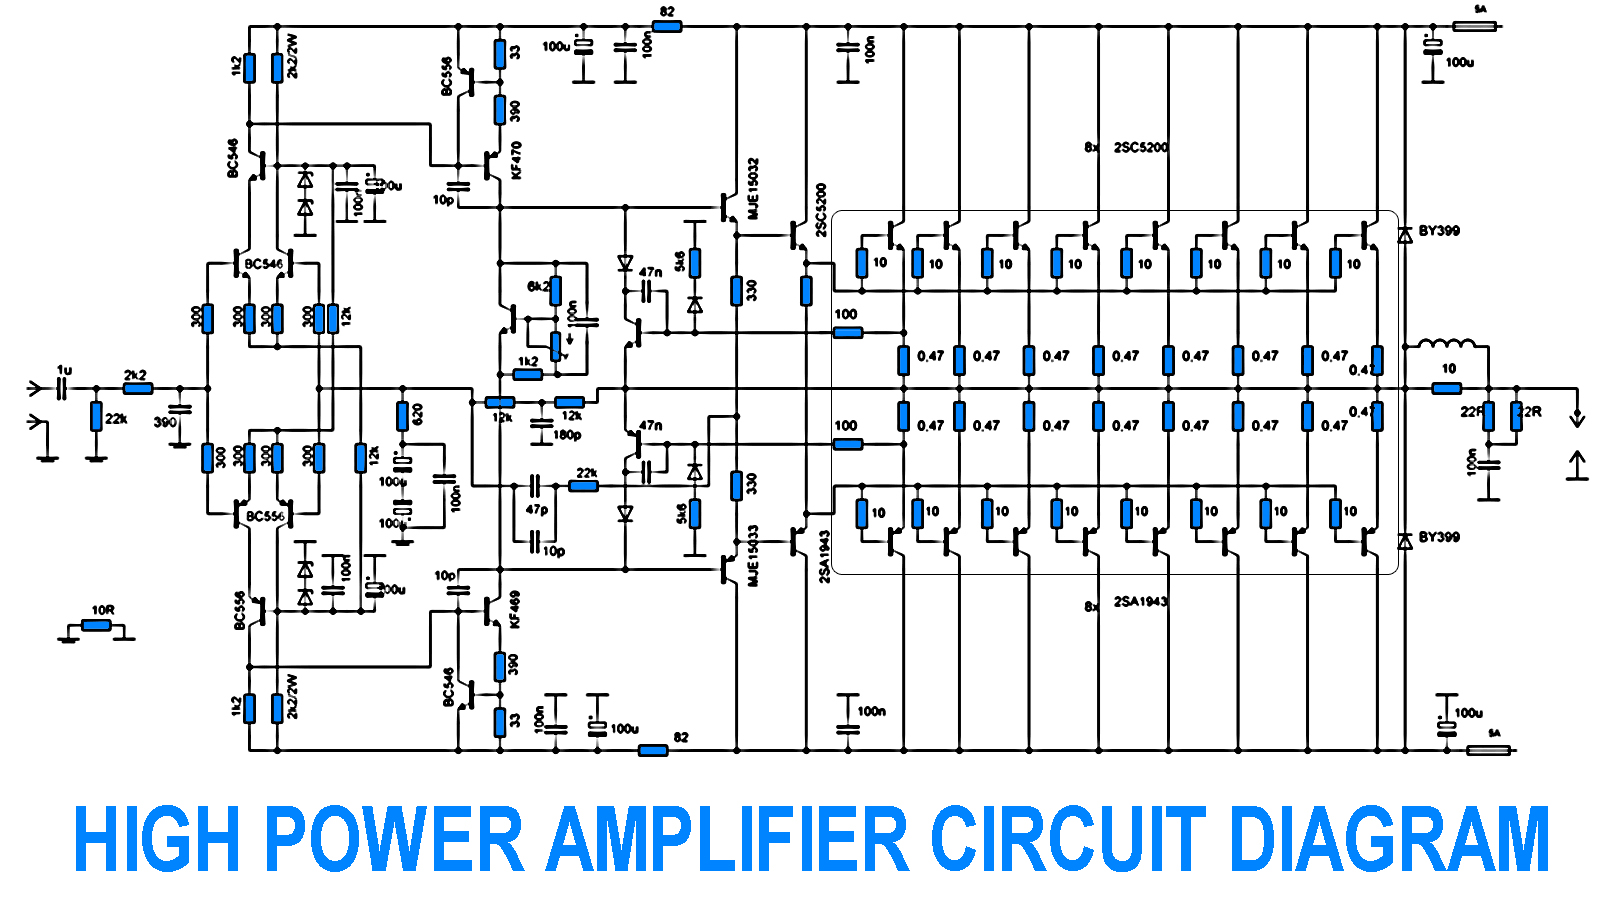 2000 watts power amplifier schematic diagram buddhism vs hinduism venn dj circuit images